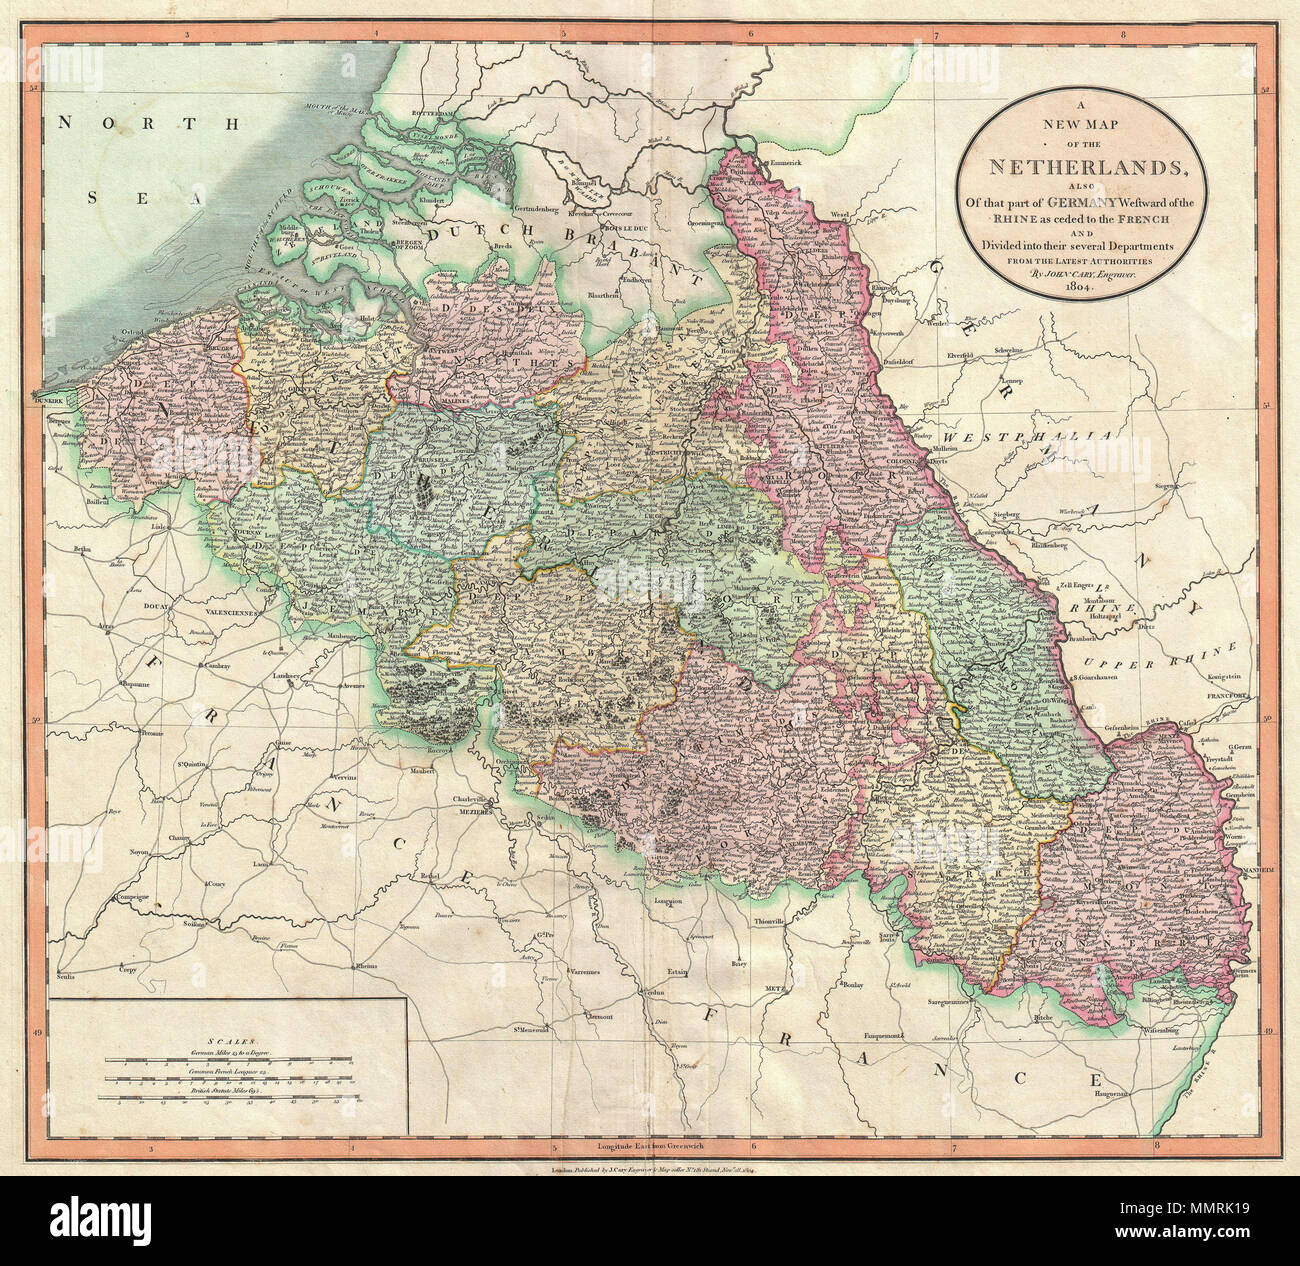 Map Of Germany Luxembourg Belgium.English Despite Being Entitled The Netherlands This Map Is John